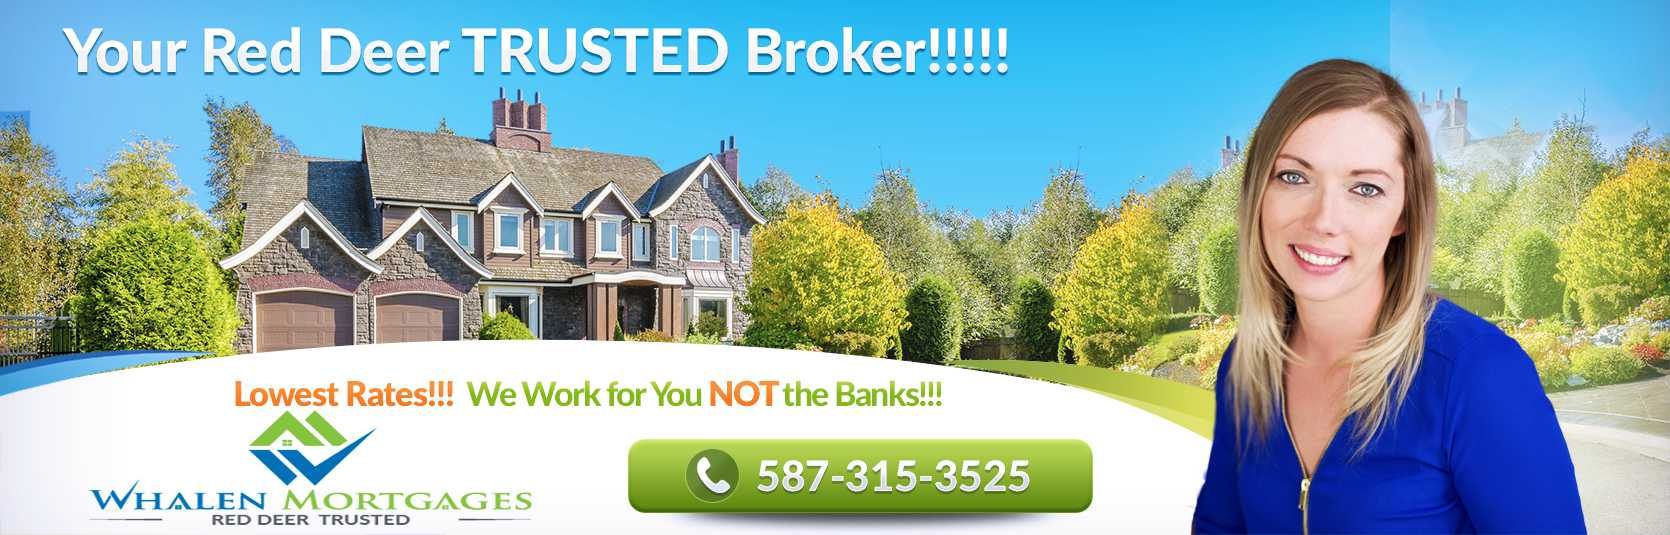 Red Deer Builder Mortgage | Construction Mortgage Red Deer | Red Deer Construction Mortgage